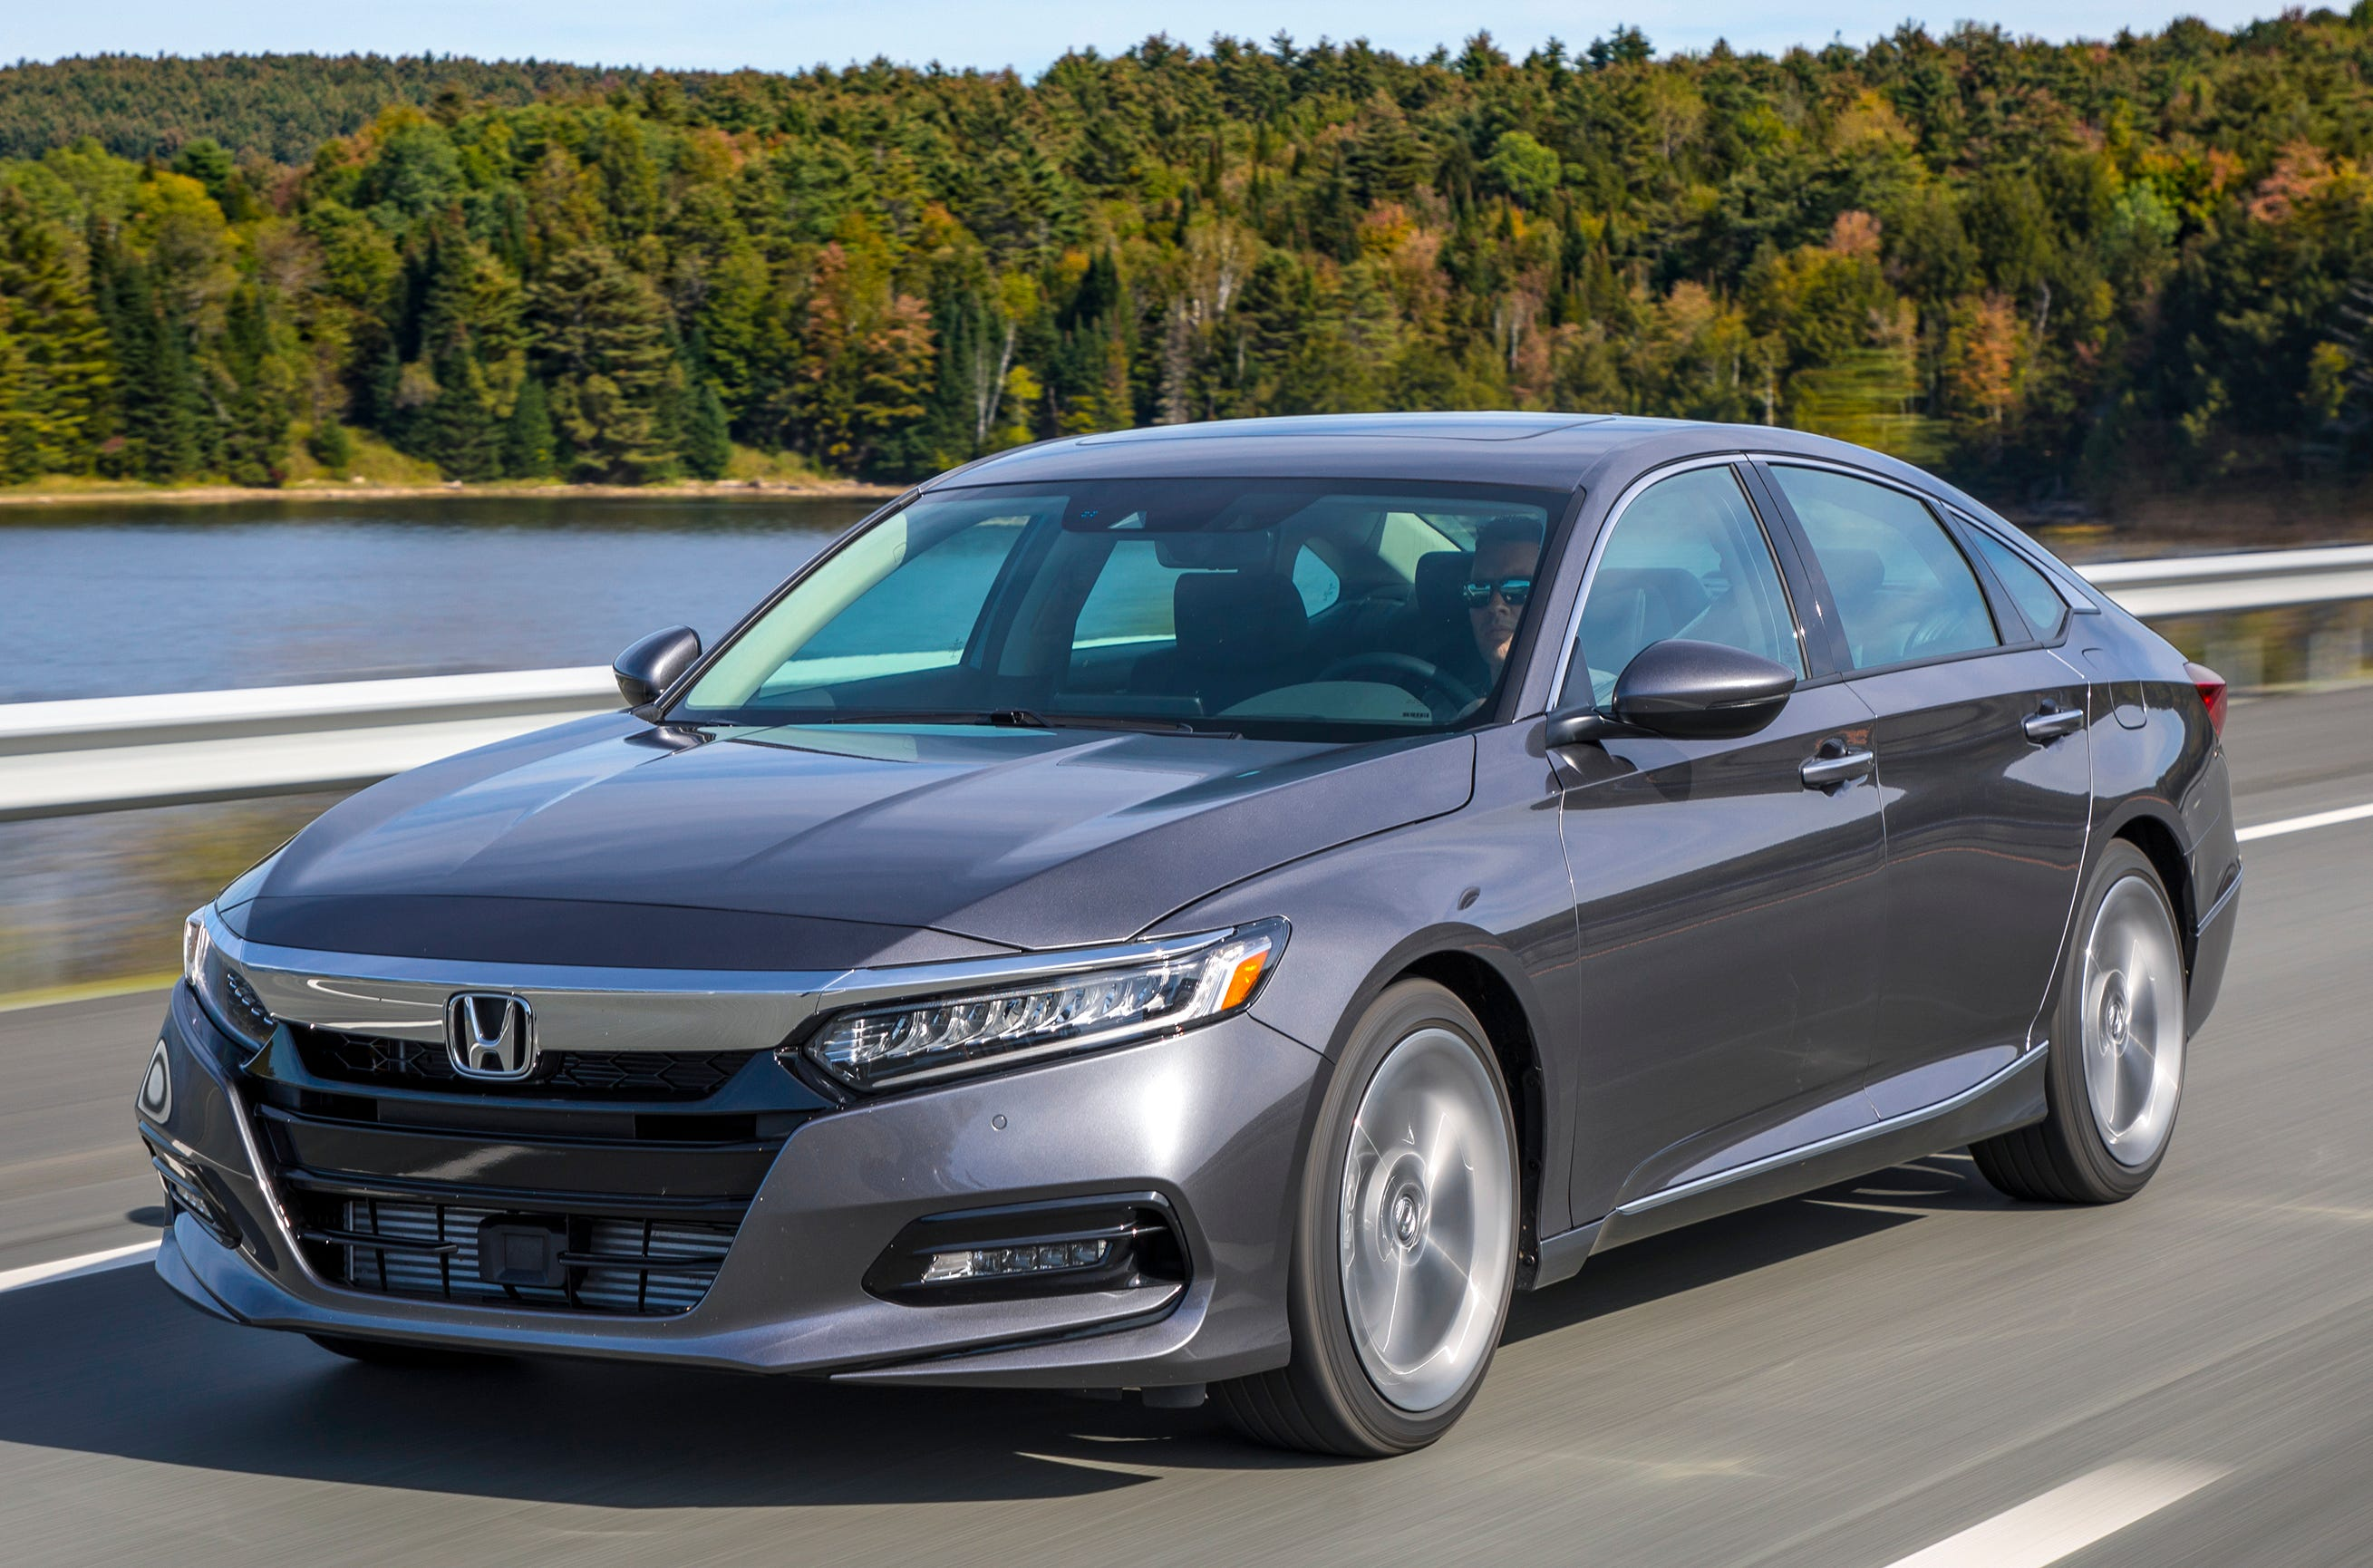 2018 Honda Accord.